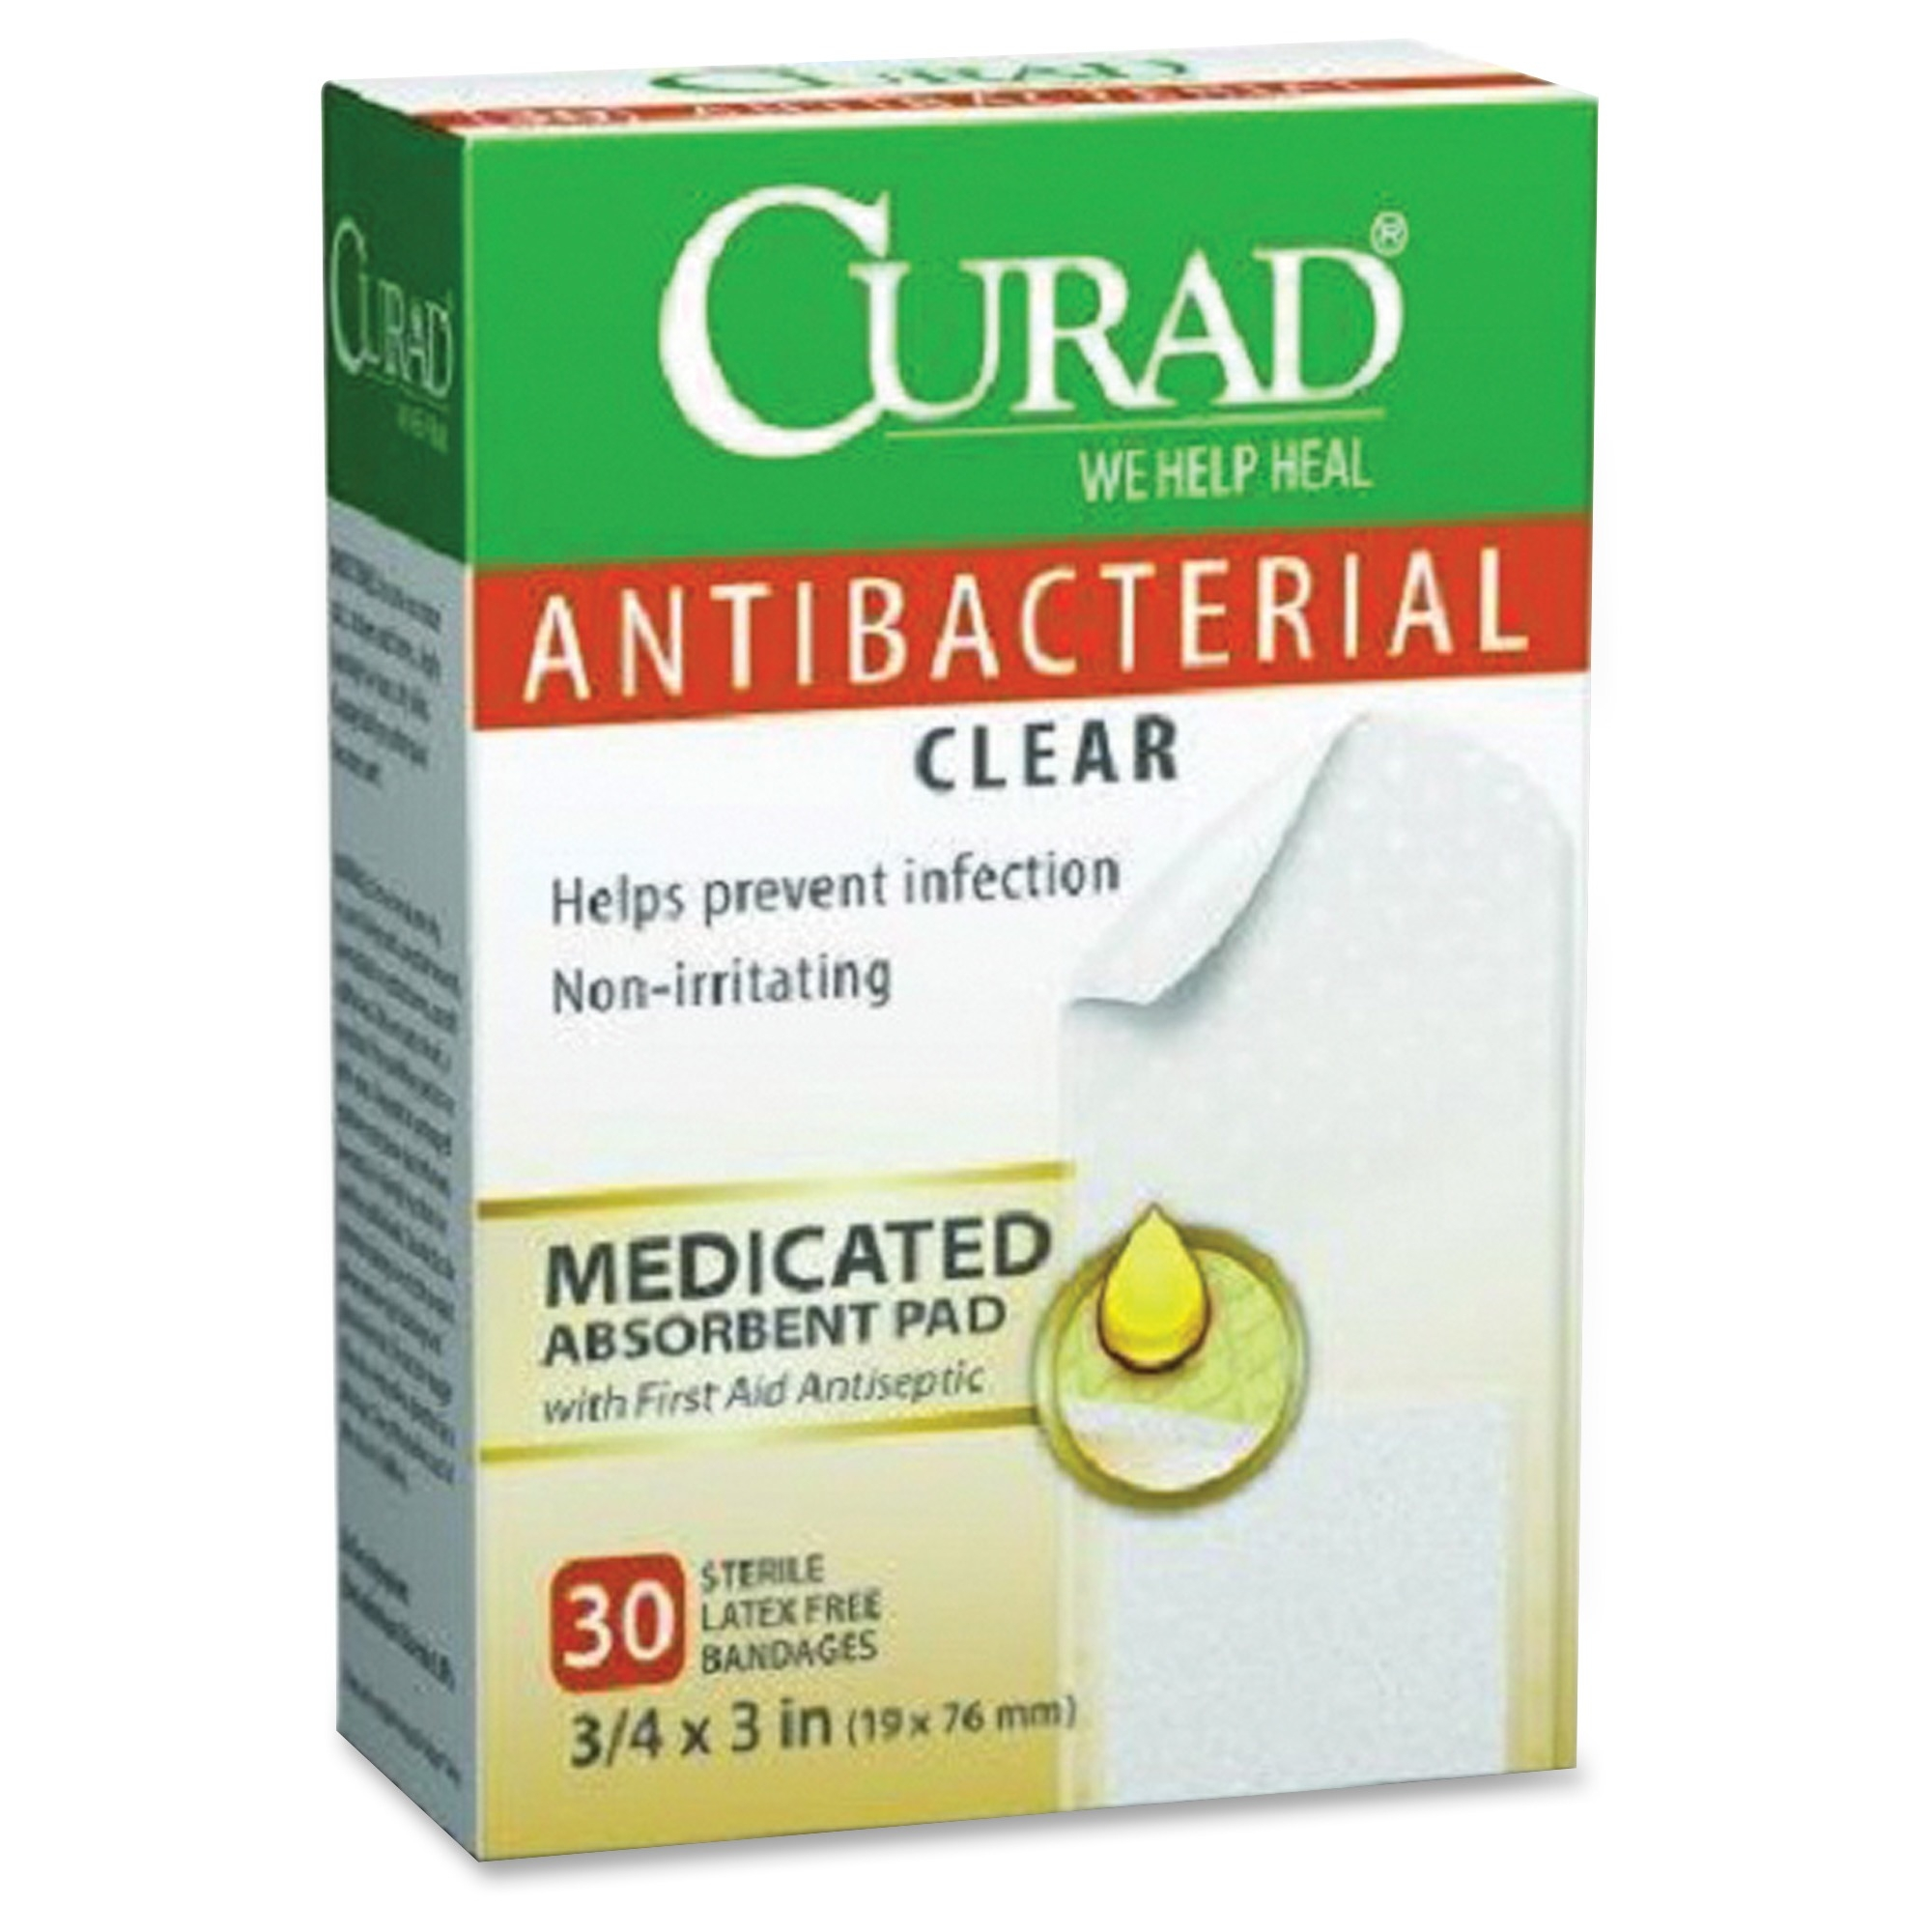 Curad Antibacterial Clear Bandages - 30/box - Clear (cur44255)